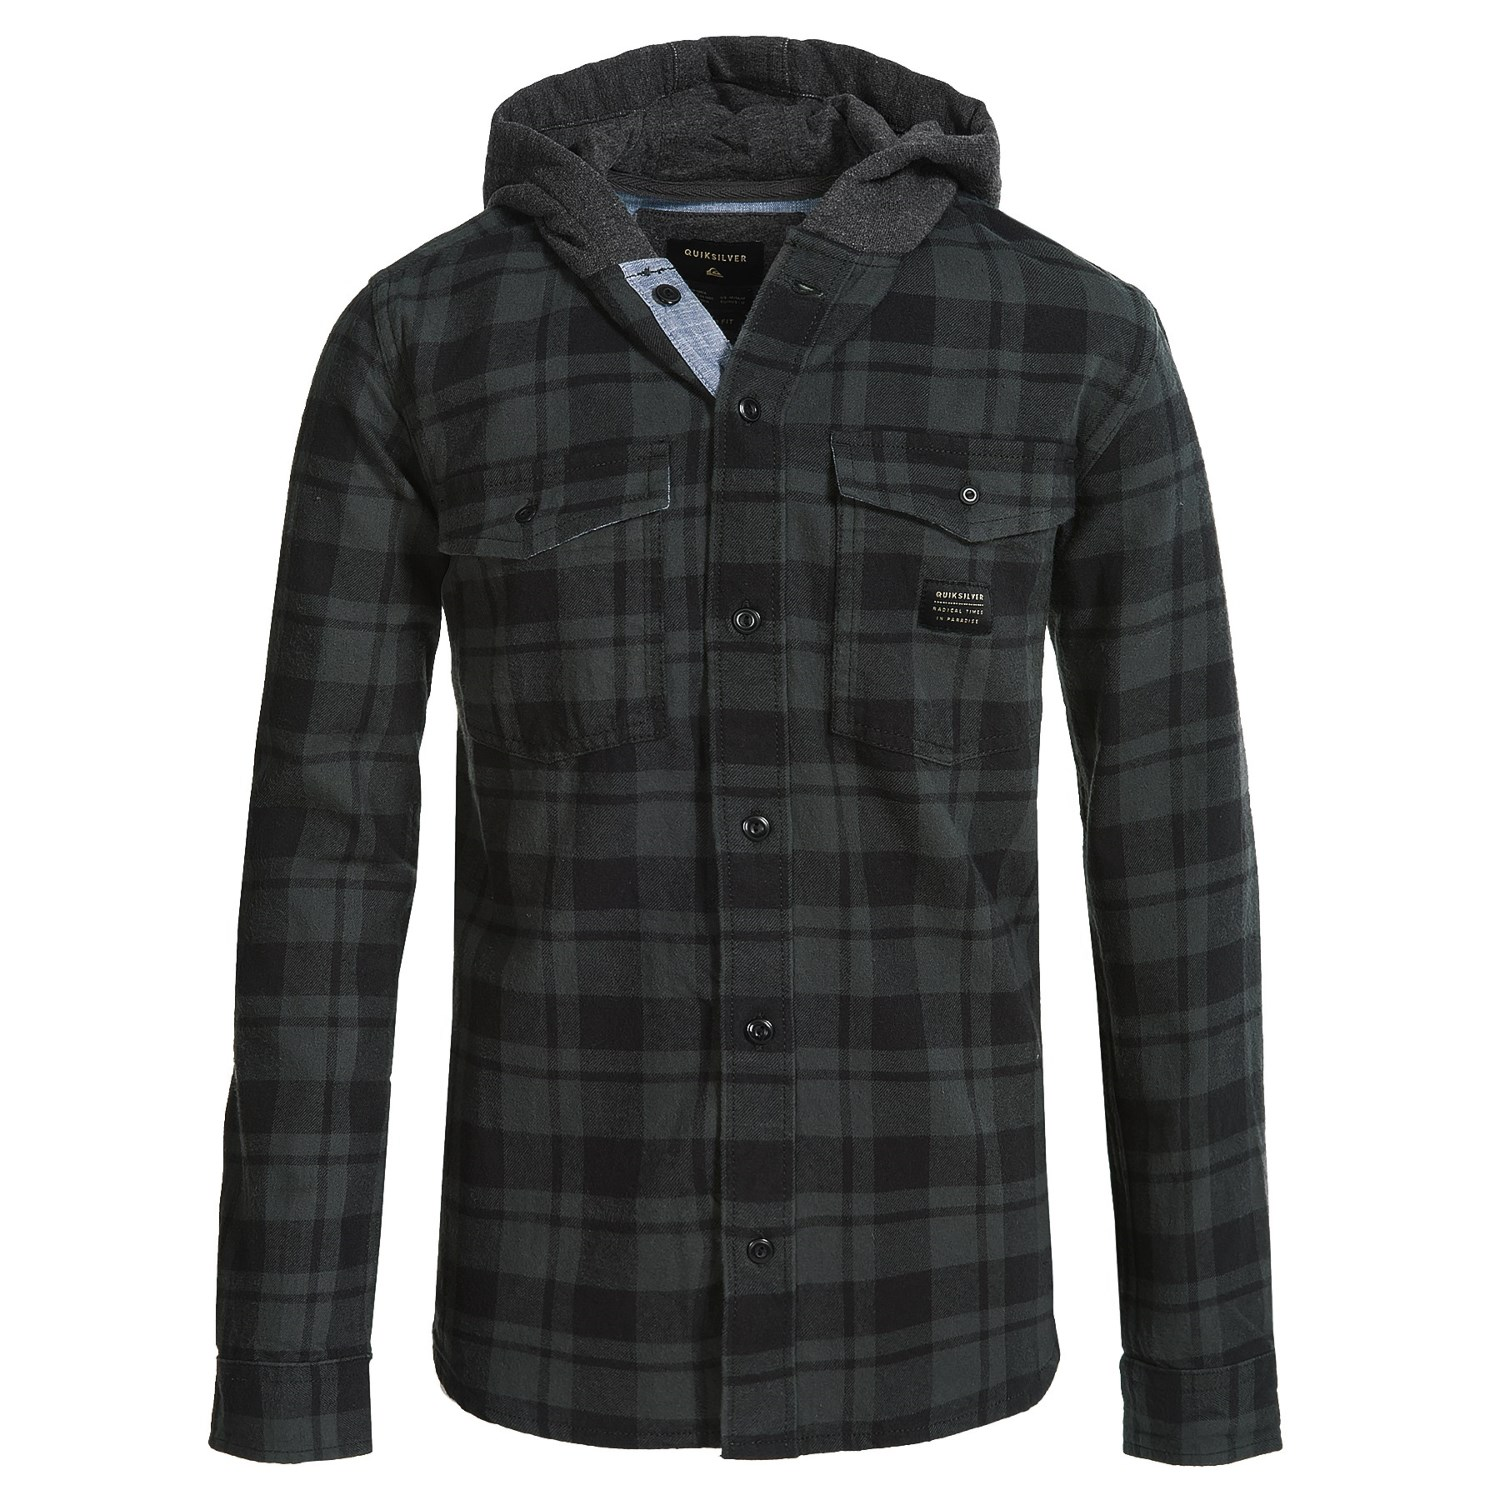 Quiksilver hooded flannel shirt for big boys 173vn for Boys long sleeve shirt with hood